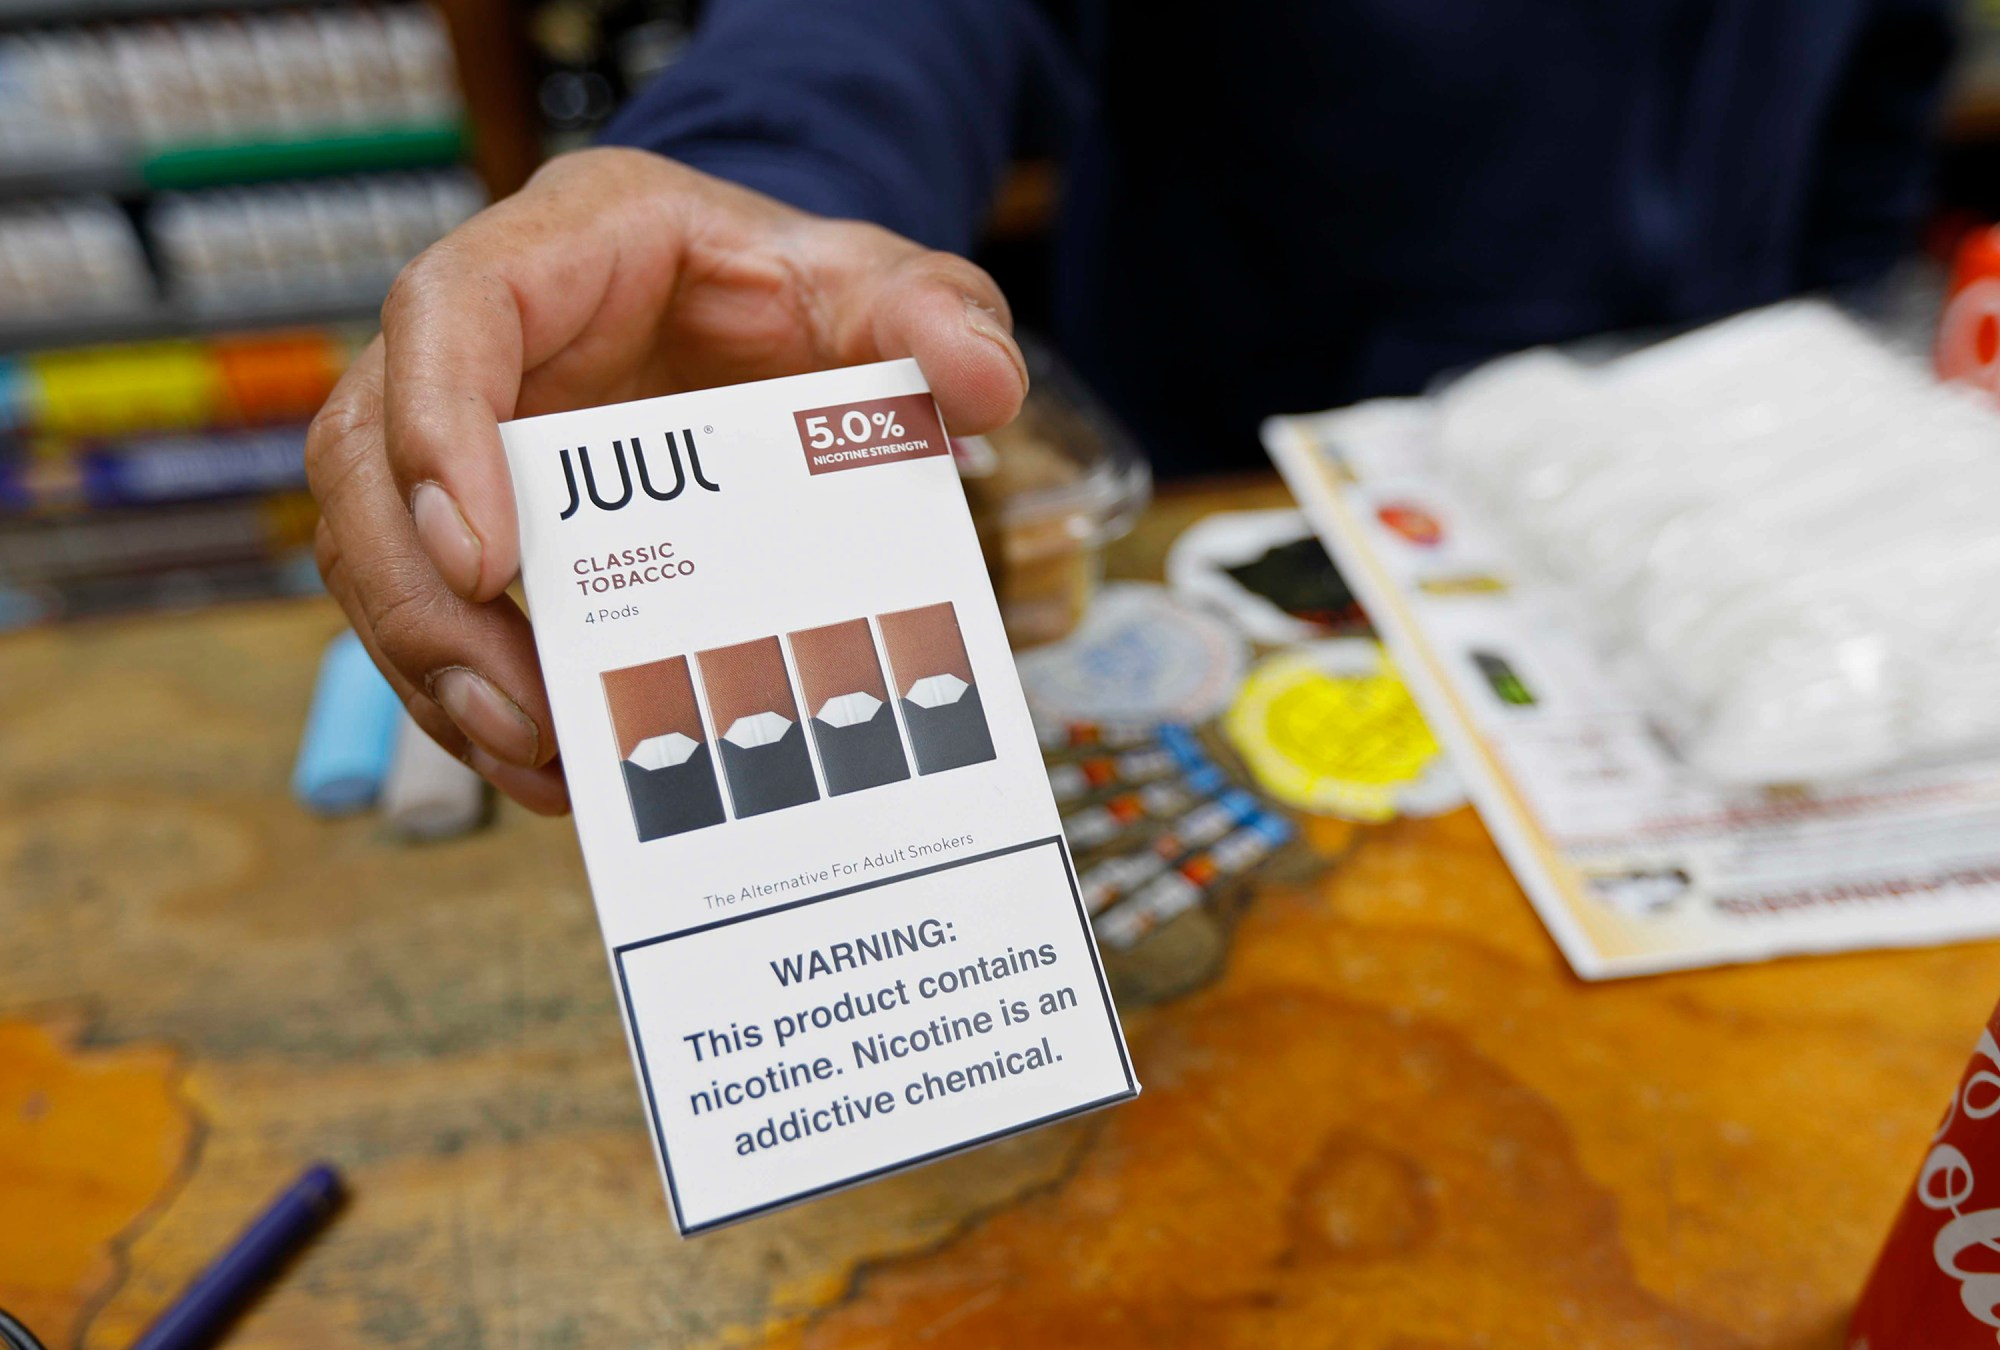 File - In this June 17, 2019, file photo, a cashier displays a packet of tobacco-flavored Juul pods at a store in San Francisco. (AP Photo/Samantha Maldonado, File)